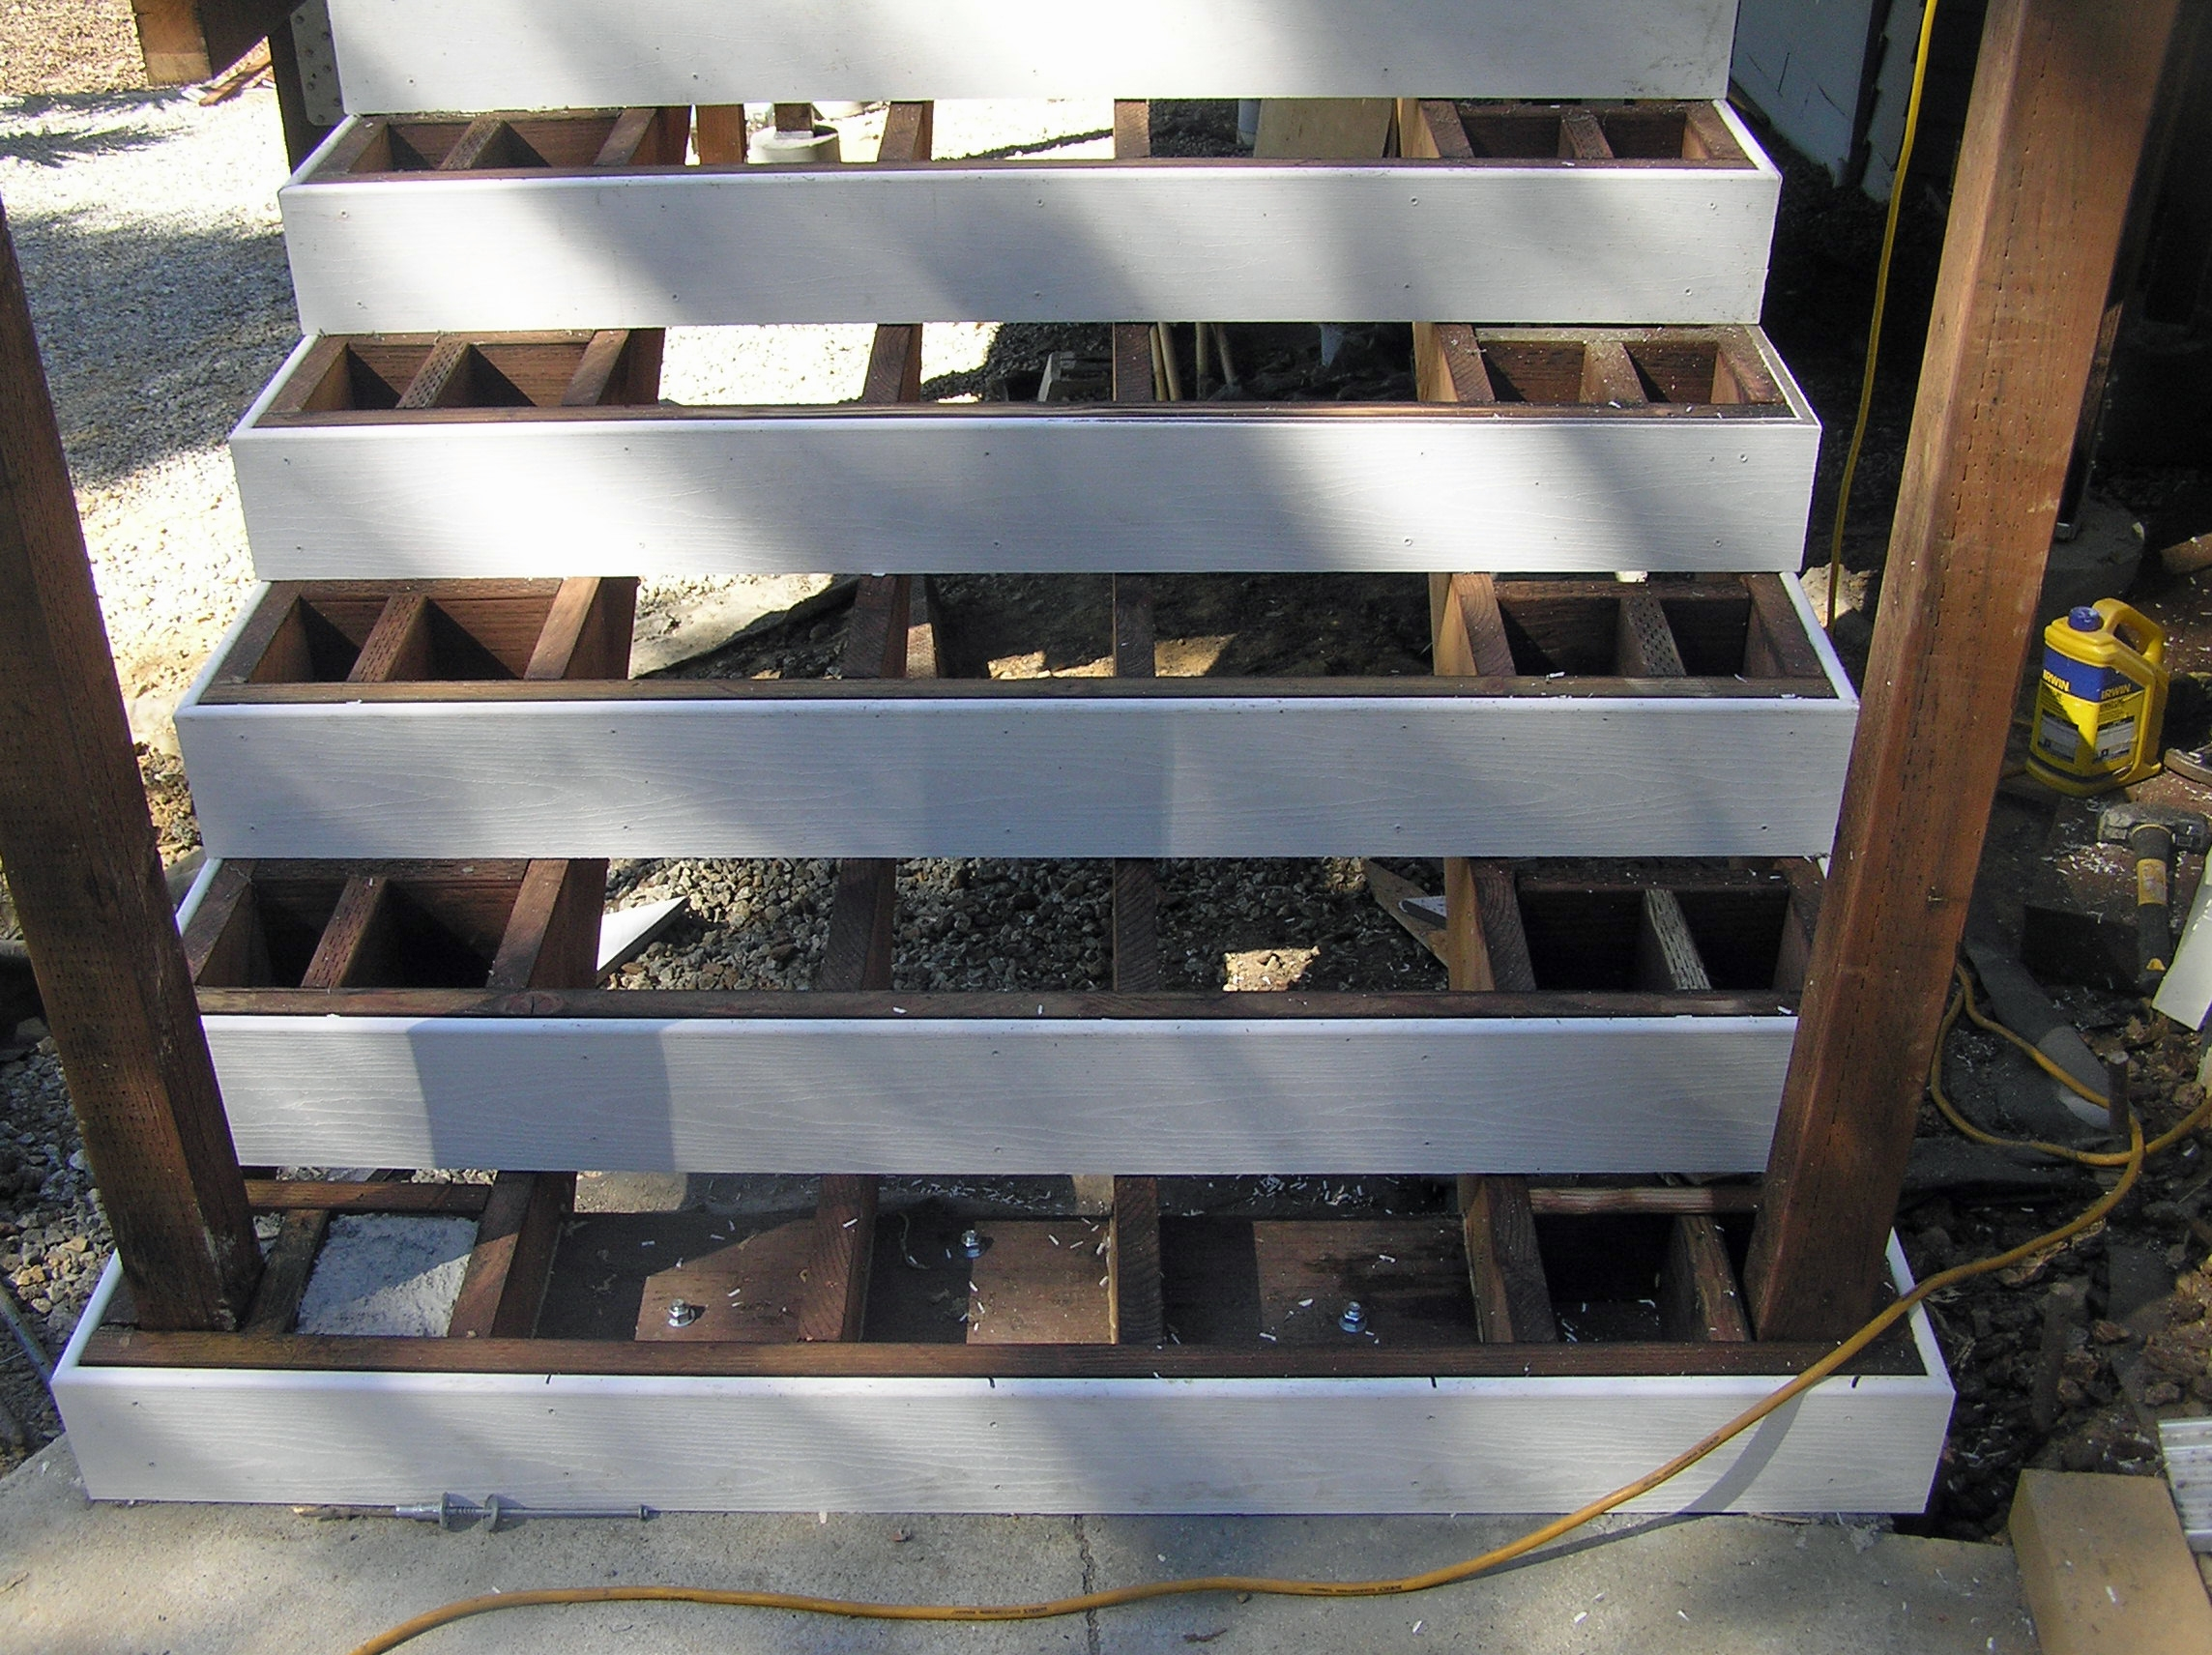 Attaching Bottom Deck Posts Thisiscarpentry | Attaching Wood To Concrete Steps | Composite Decking | Handrail | Staircase | Screws | Deck Stairs